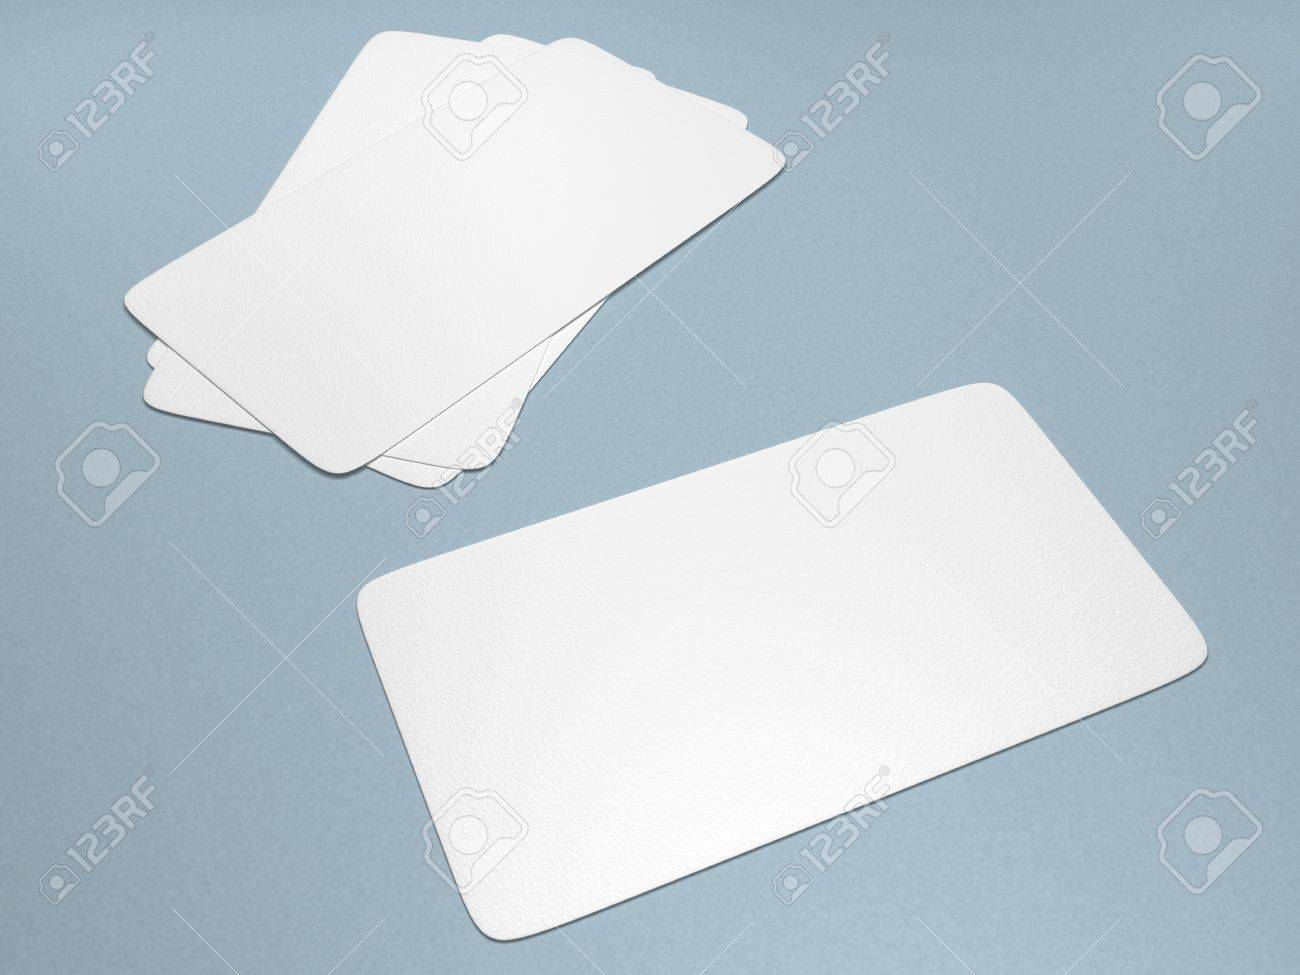 A set of blank business cards against a light blue background Stock Photo - 5140064